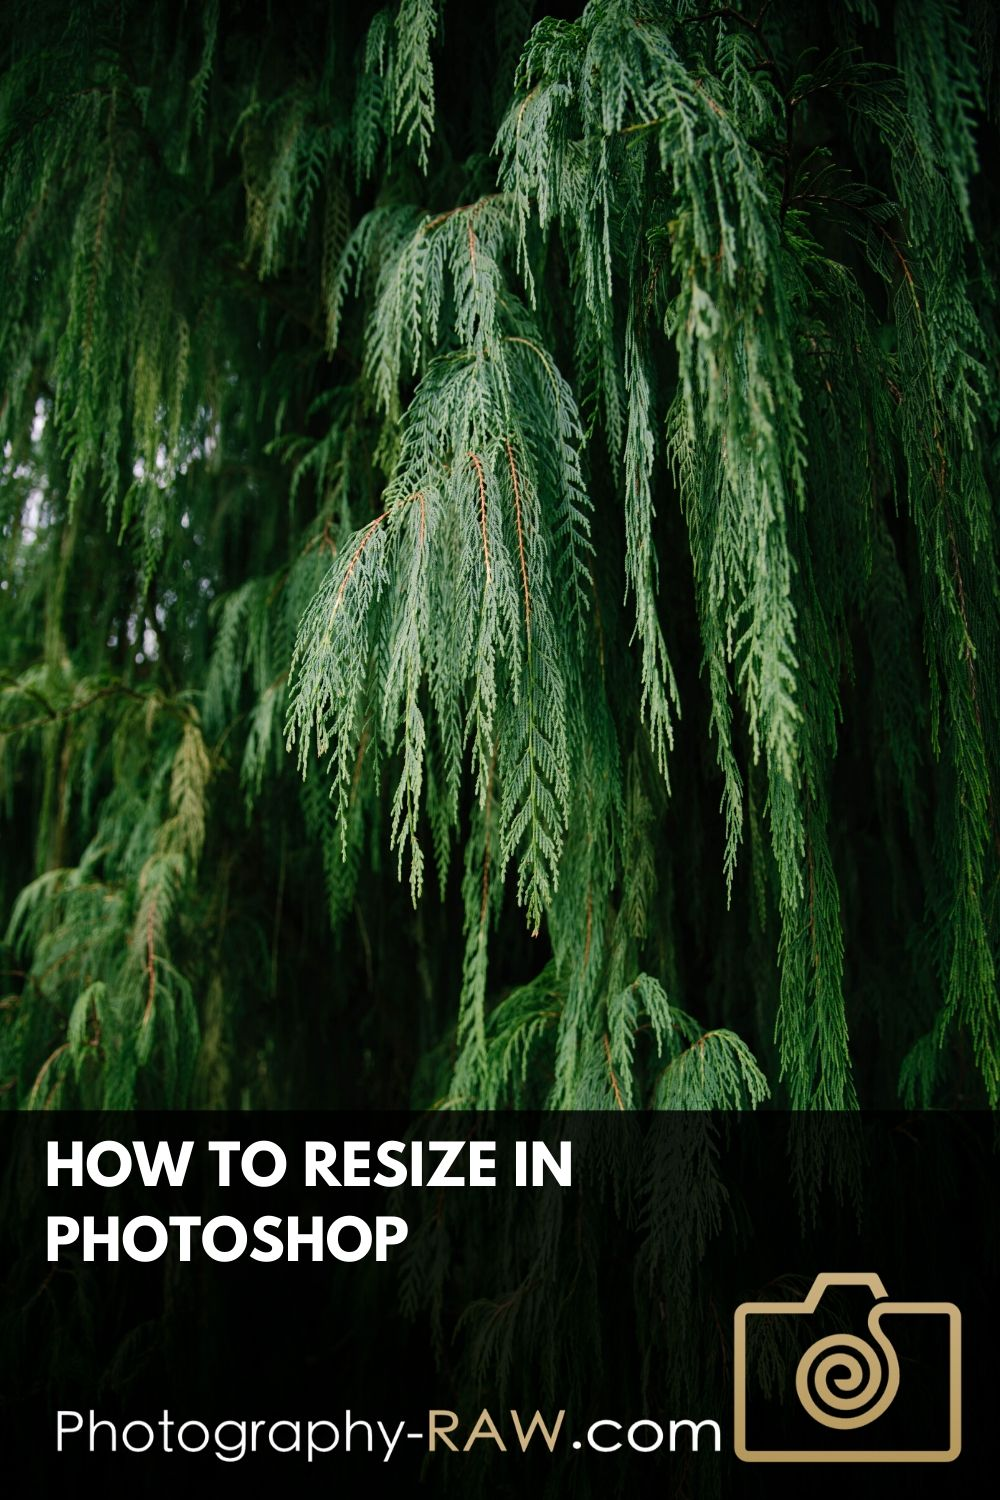 Find out how to resize your images in Photoshop CC. Get the quick instructions plus how to combine it with the best image format for exporting.